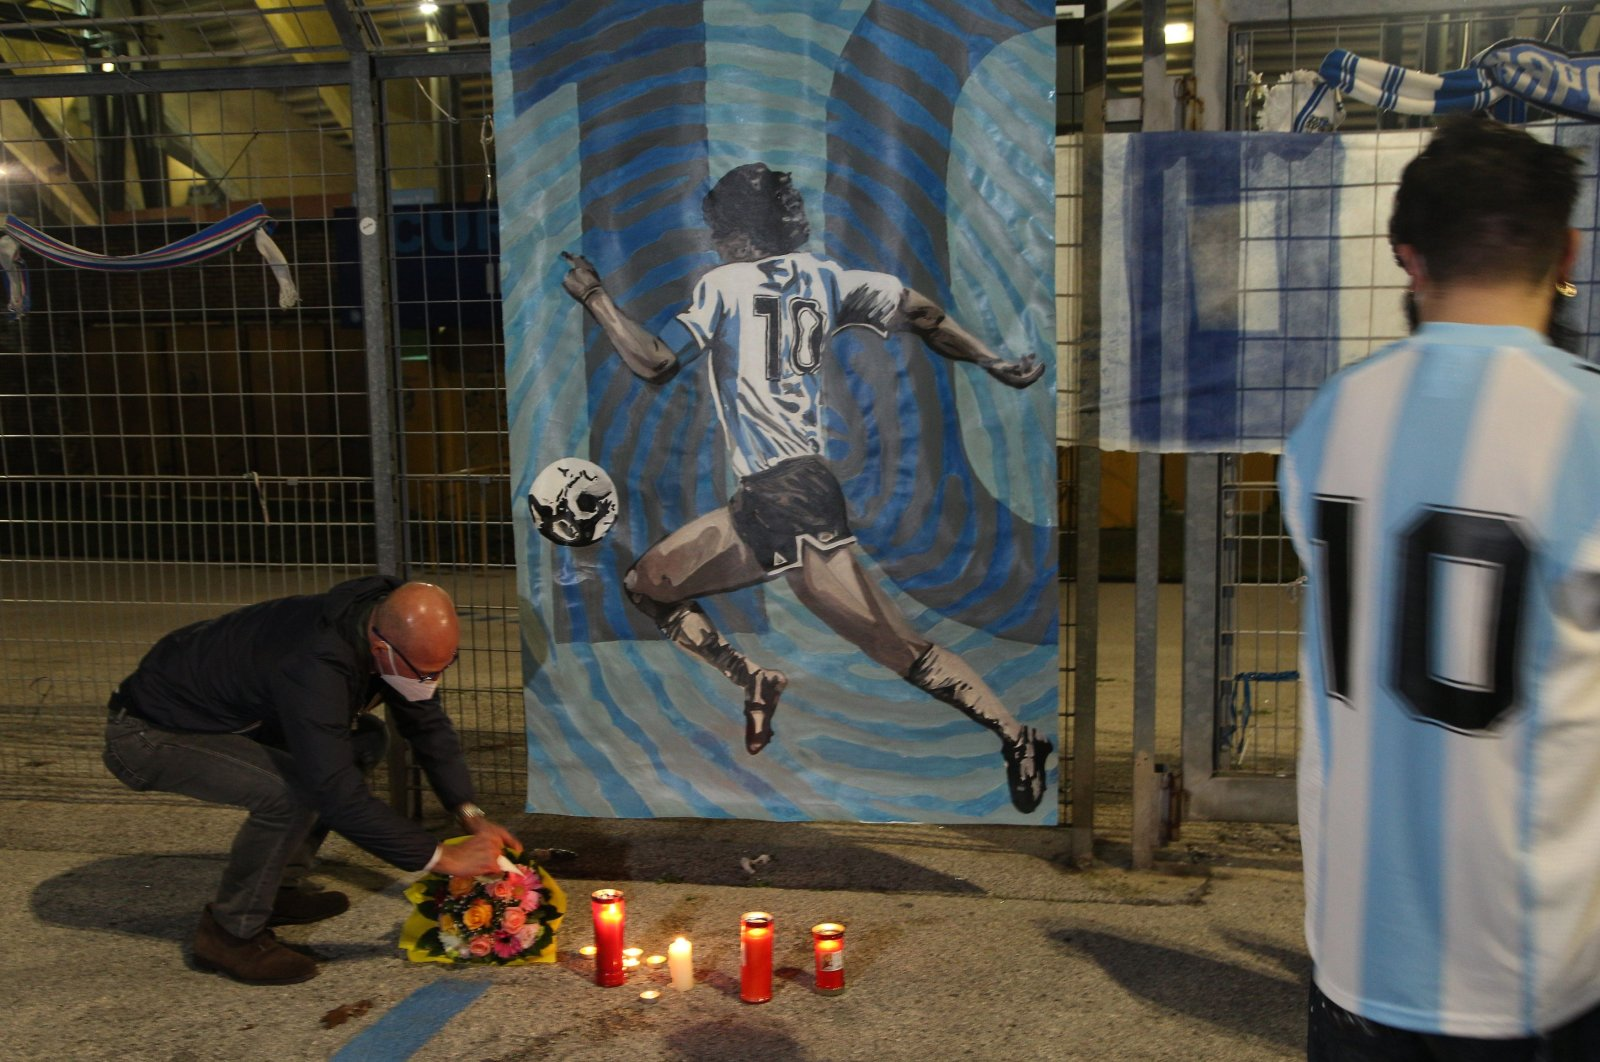 People pay their respects in front of an image of Diego Maradona at the San Paolo, Naples, Italy, Nov. 25, 2020. (AFP Photo)